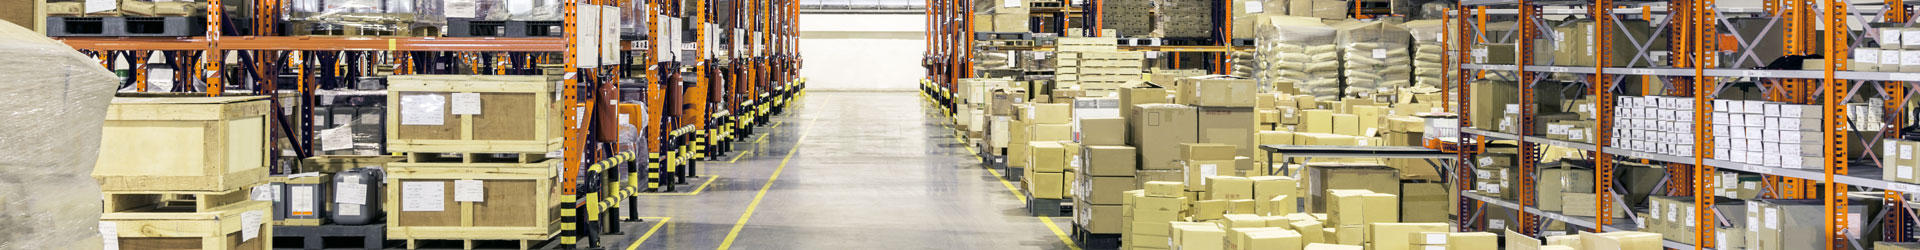 Aviation aerospace warehousing and logistics operations